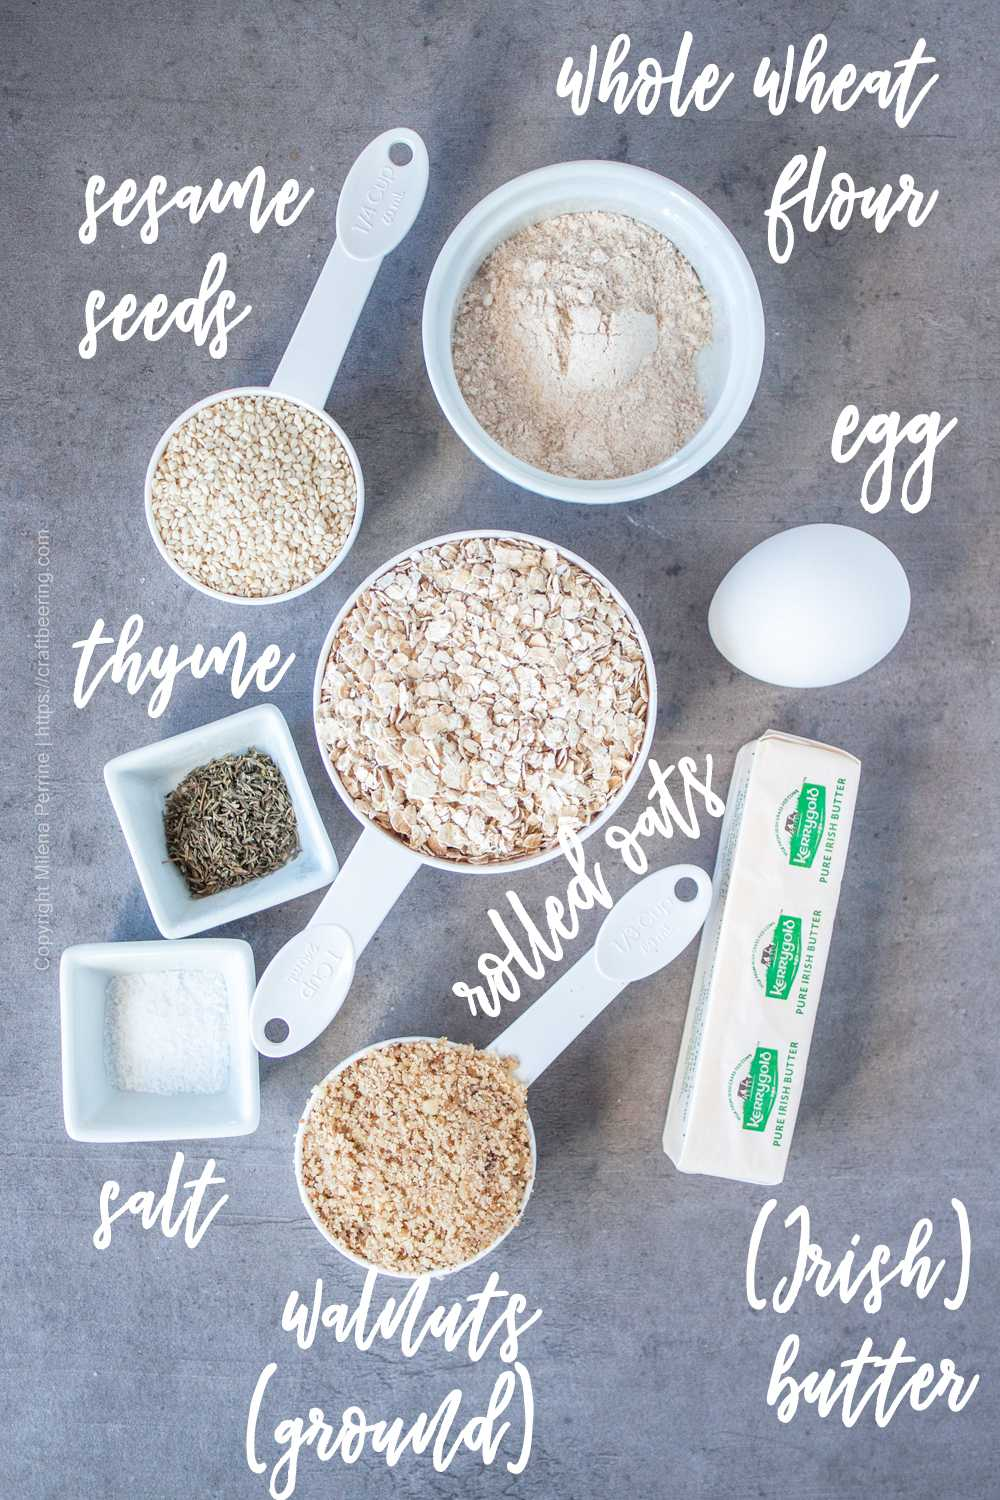 Rolled oats and other ingredients for oatcakes (savory oat crackers)